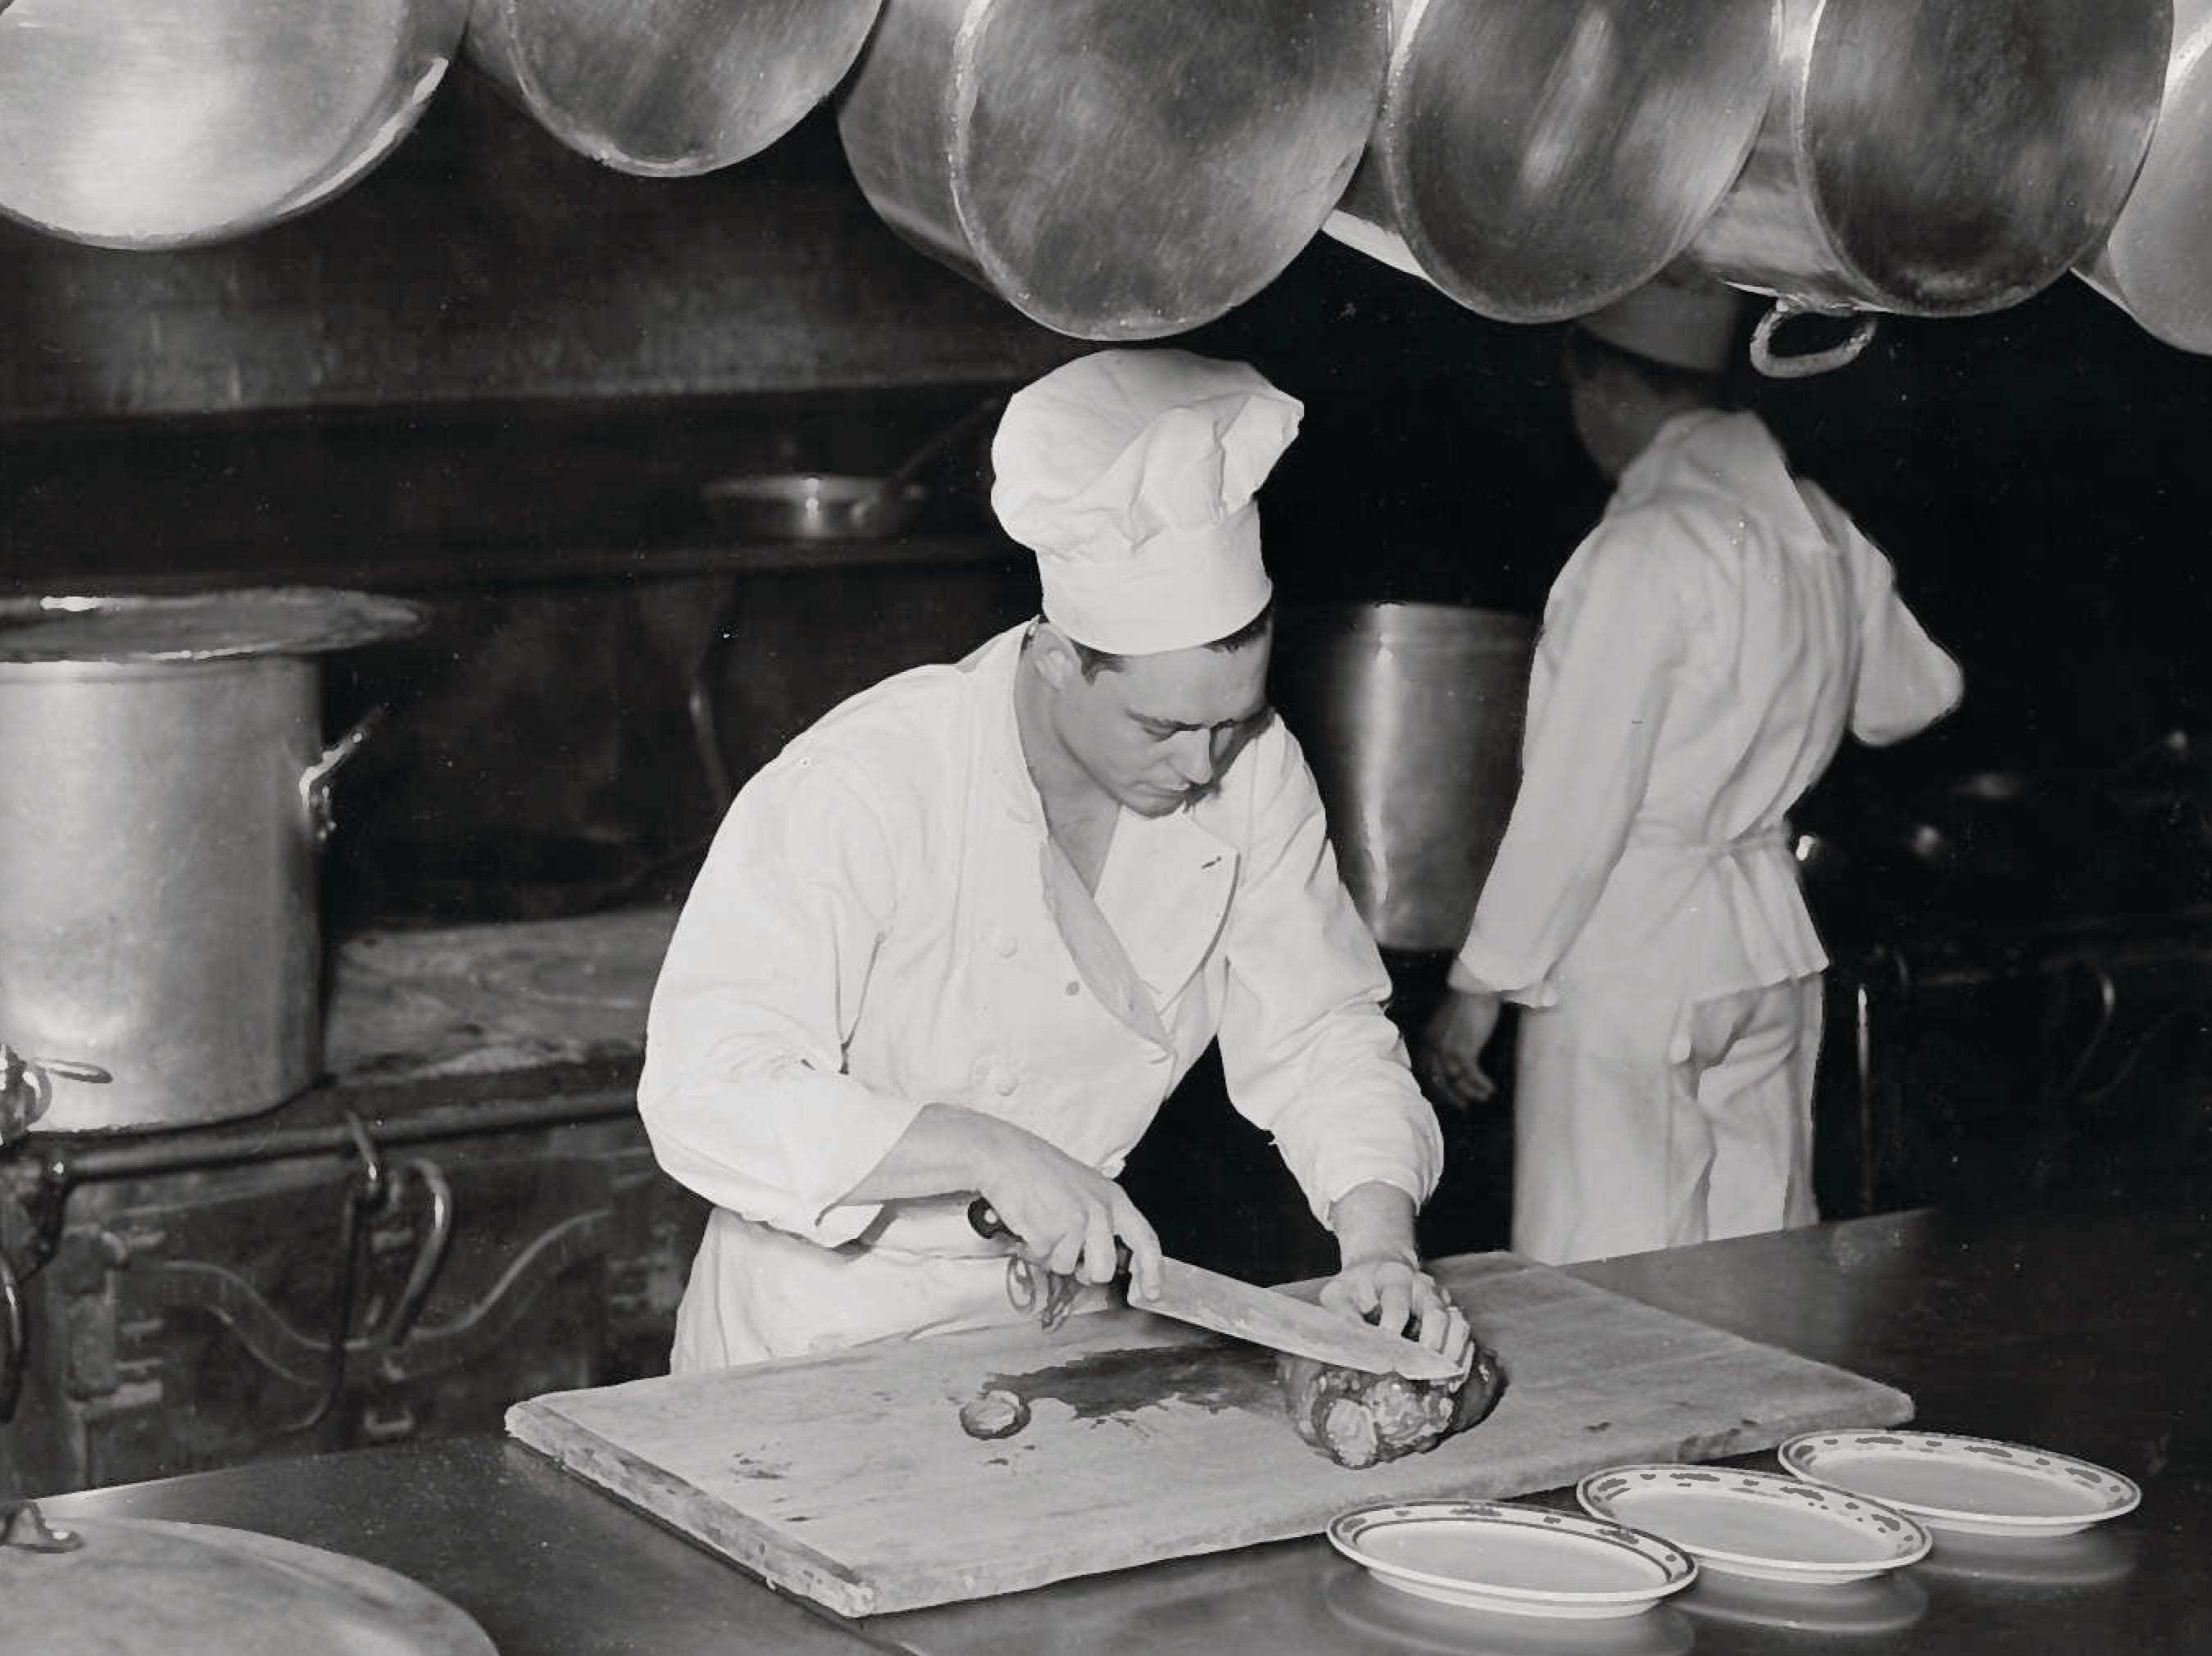 Chefs prepare meals in the kitchen at the French Lick Springs Hotel.